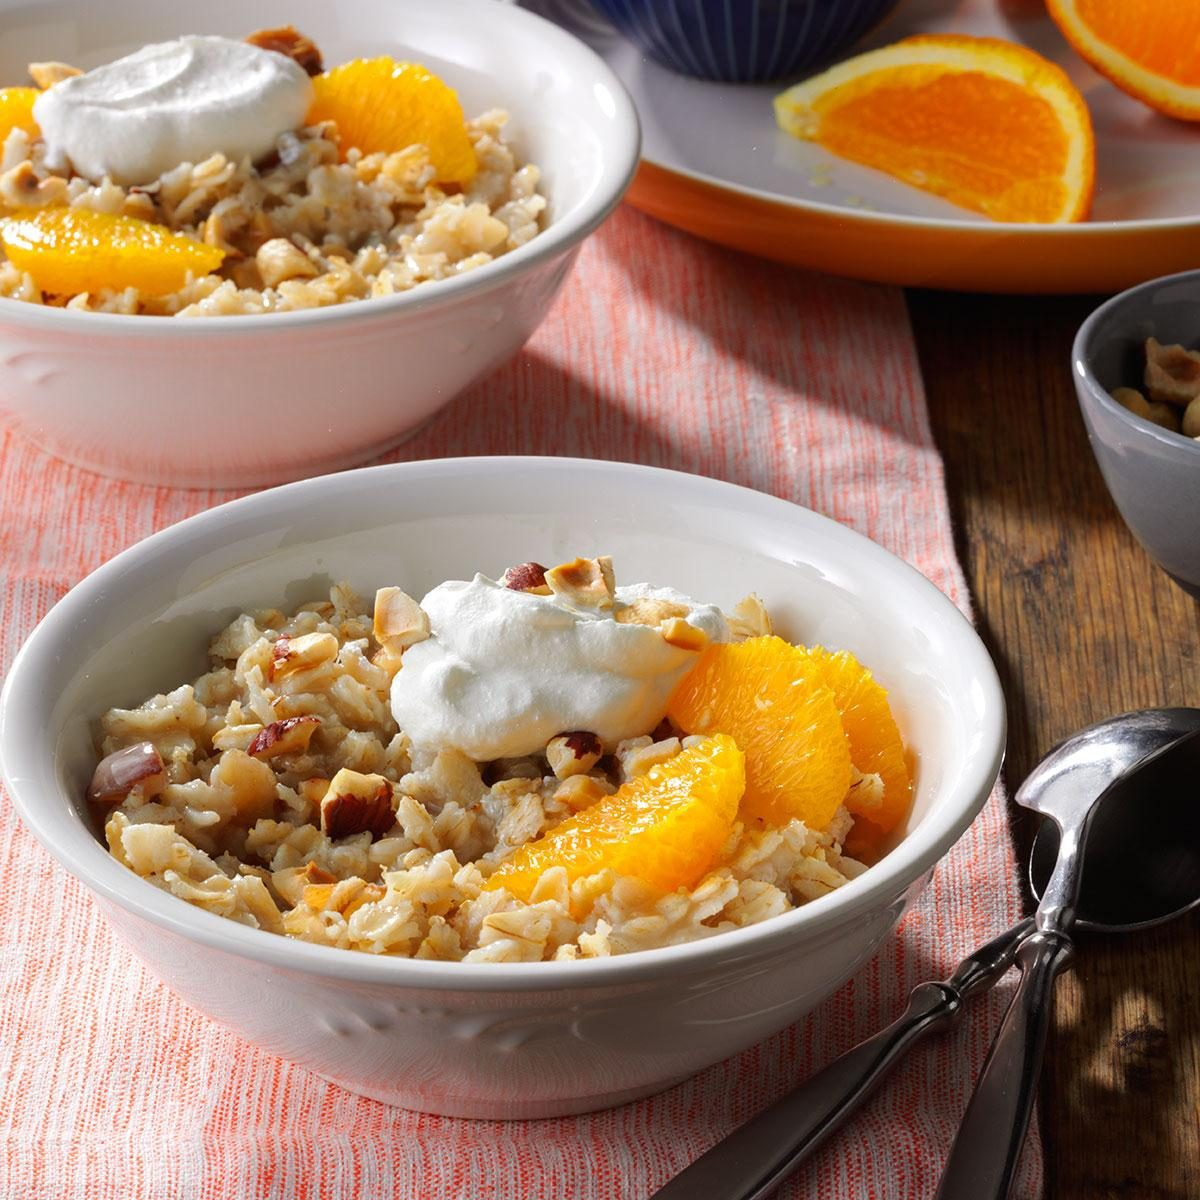 Spiced Orange-Hazelnut Oatmeal